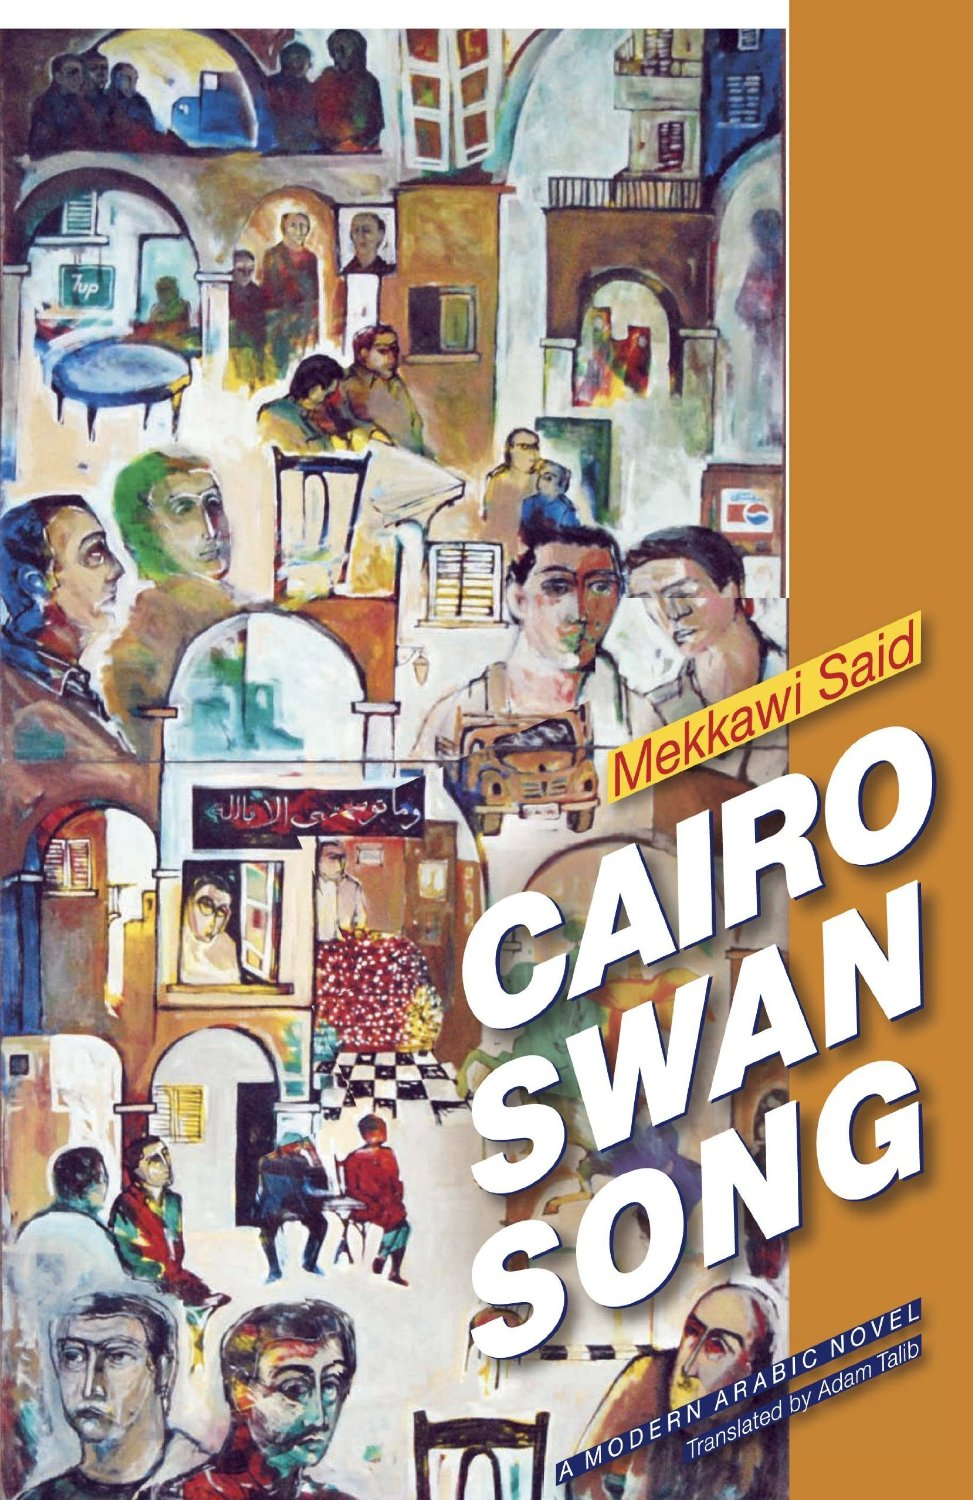 Cairo Swan Song by Mekkawi Said  Published by The American University in Cairo Press in 2011